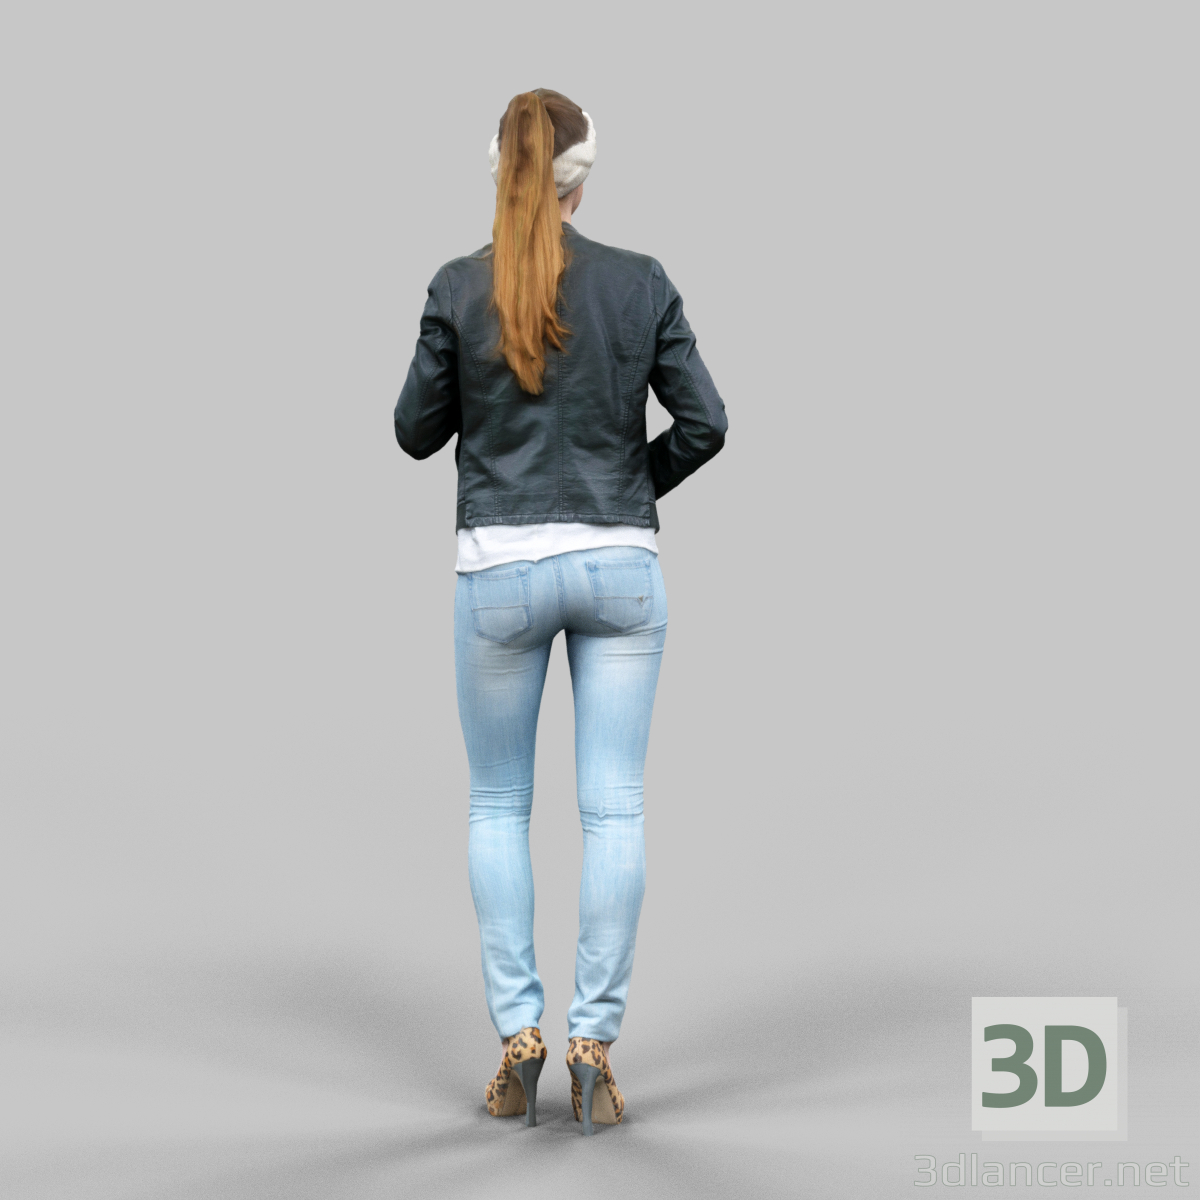 3d model real 3d woman - preview